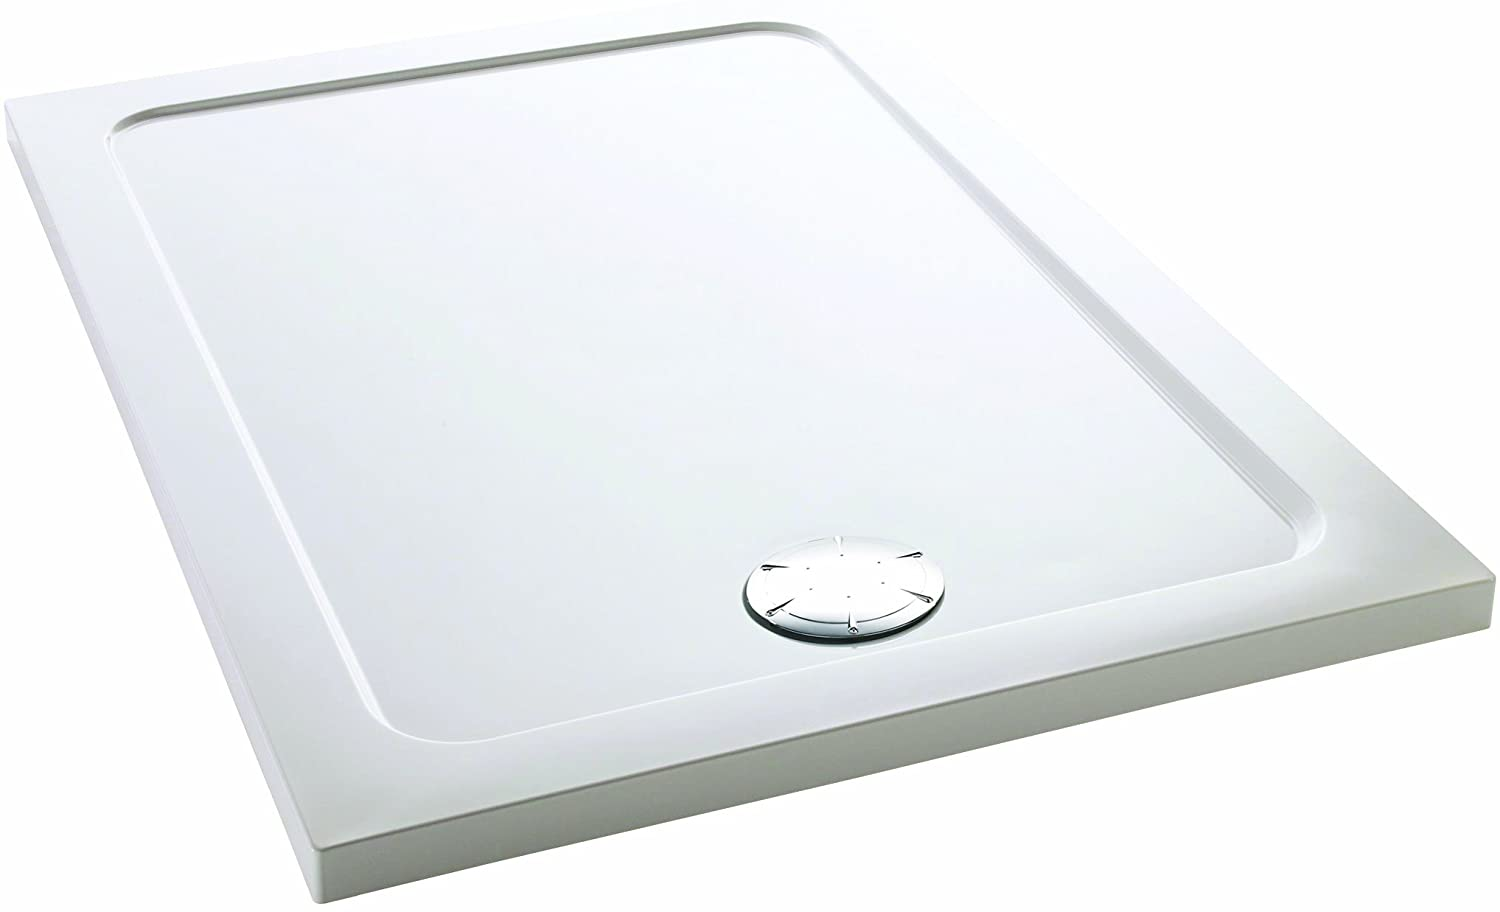 Mira 1.1697.008.AS White Flight Safe Rectangle Shower Tray 1000 mm x